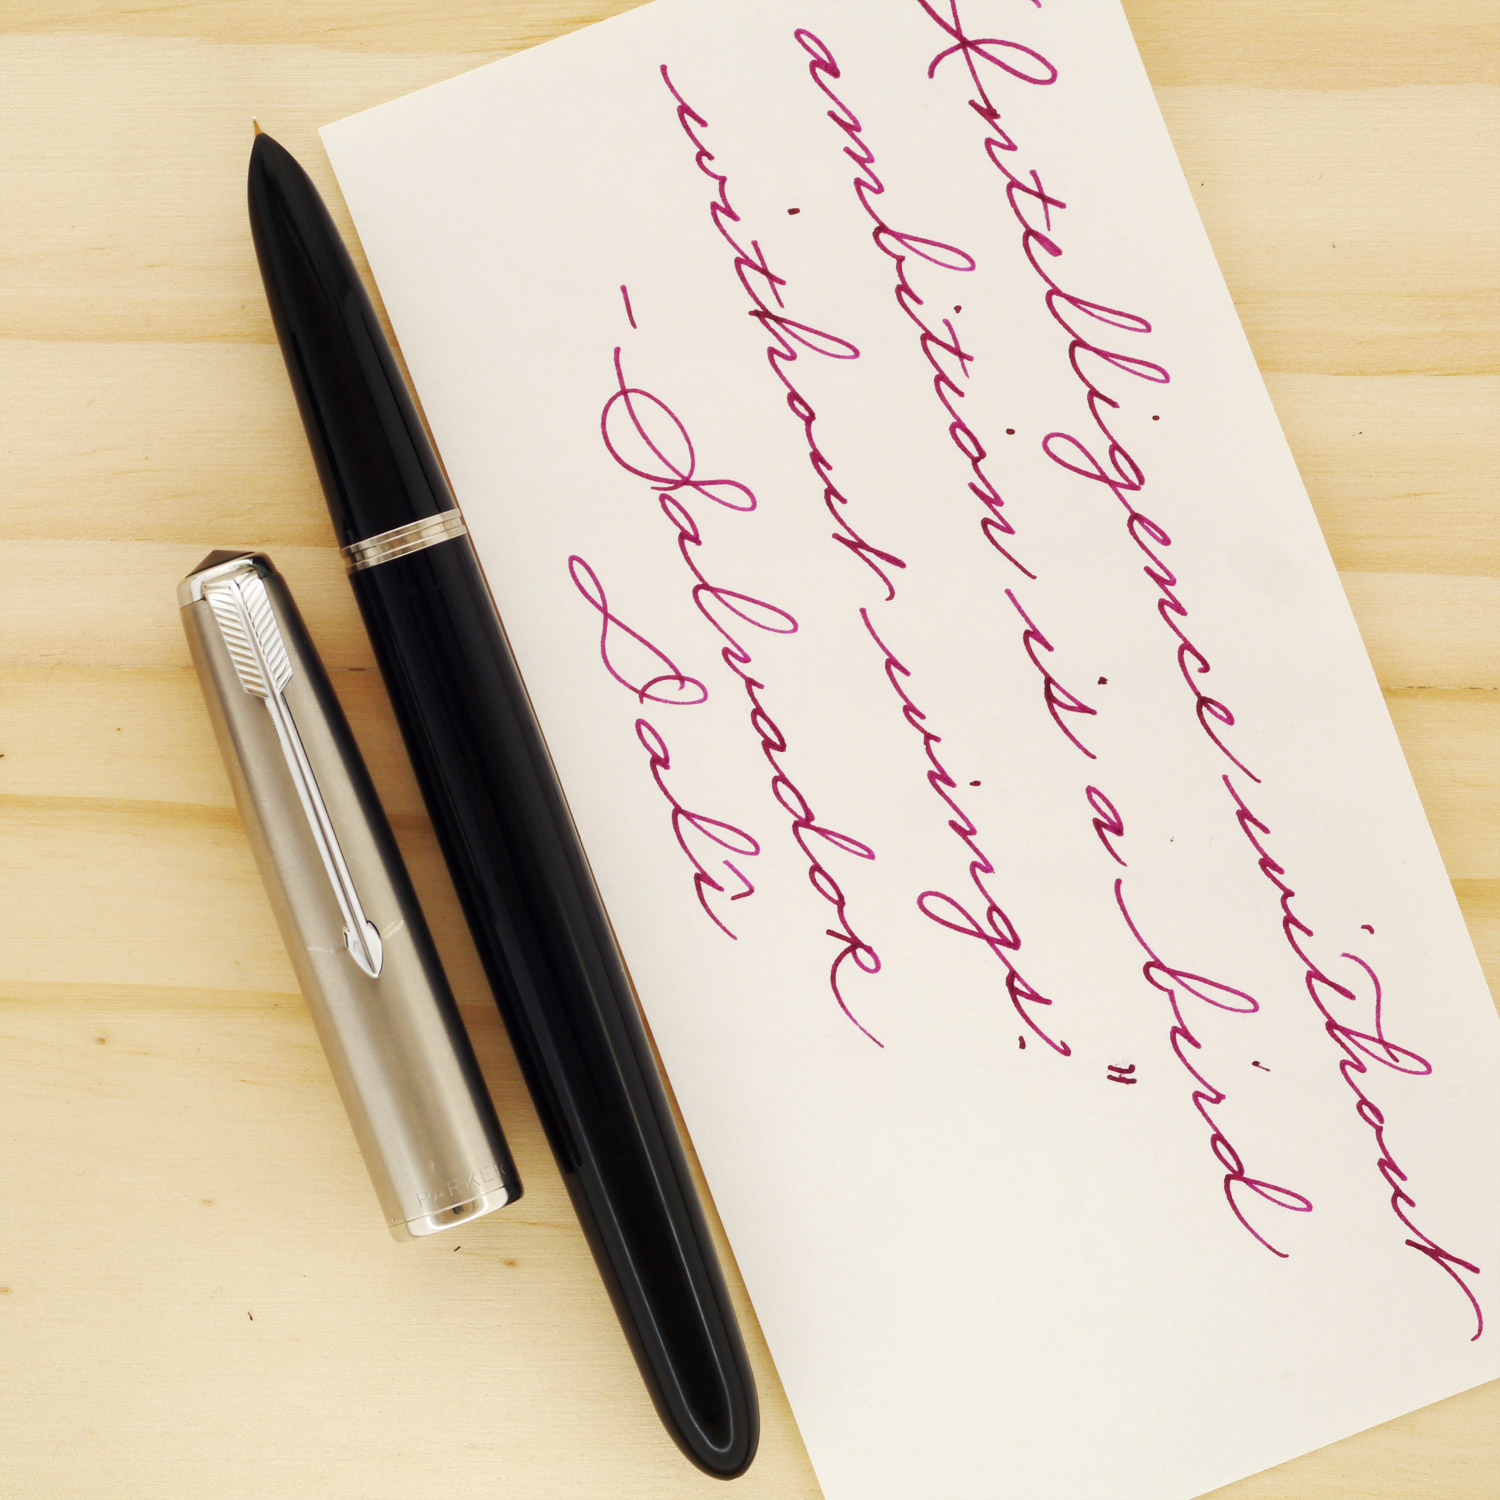 Parker 51 Aerometric in classic Black with a frosted cap